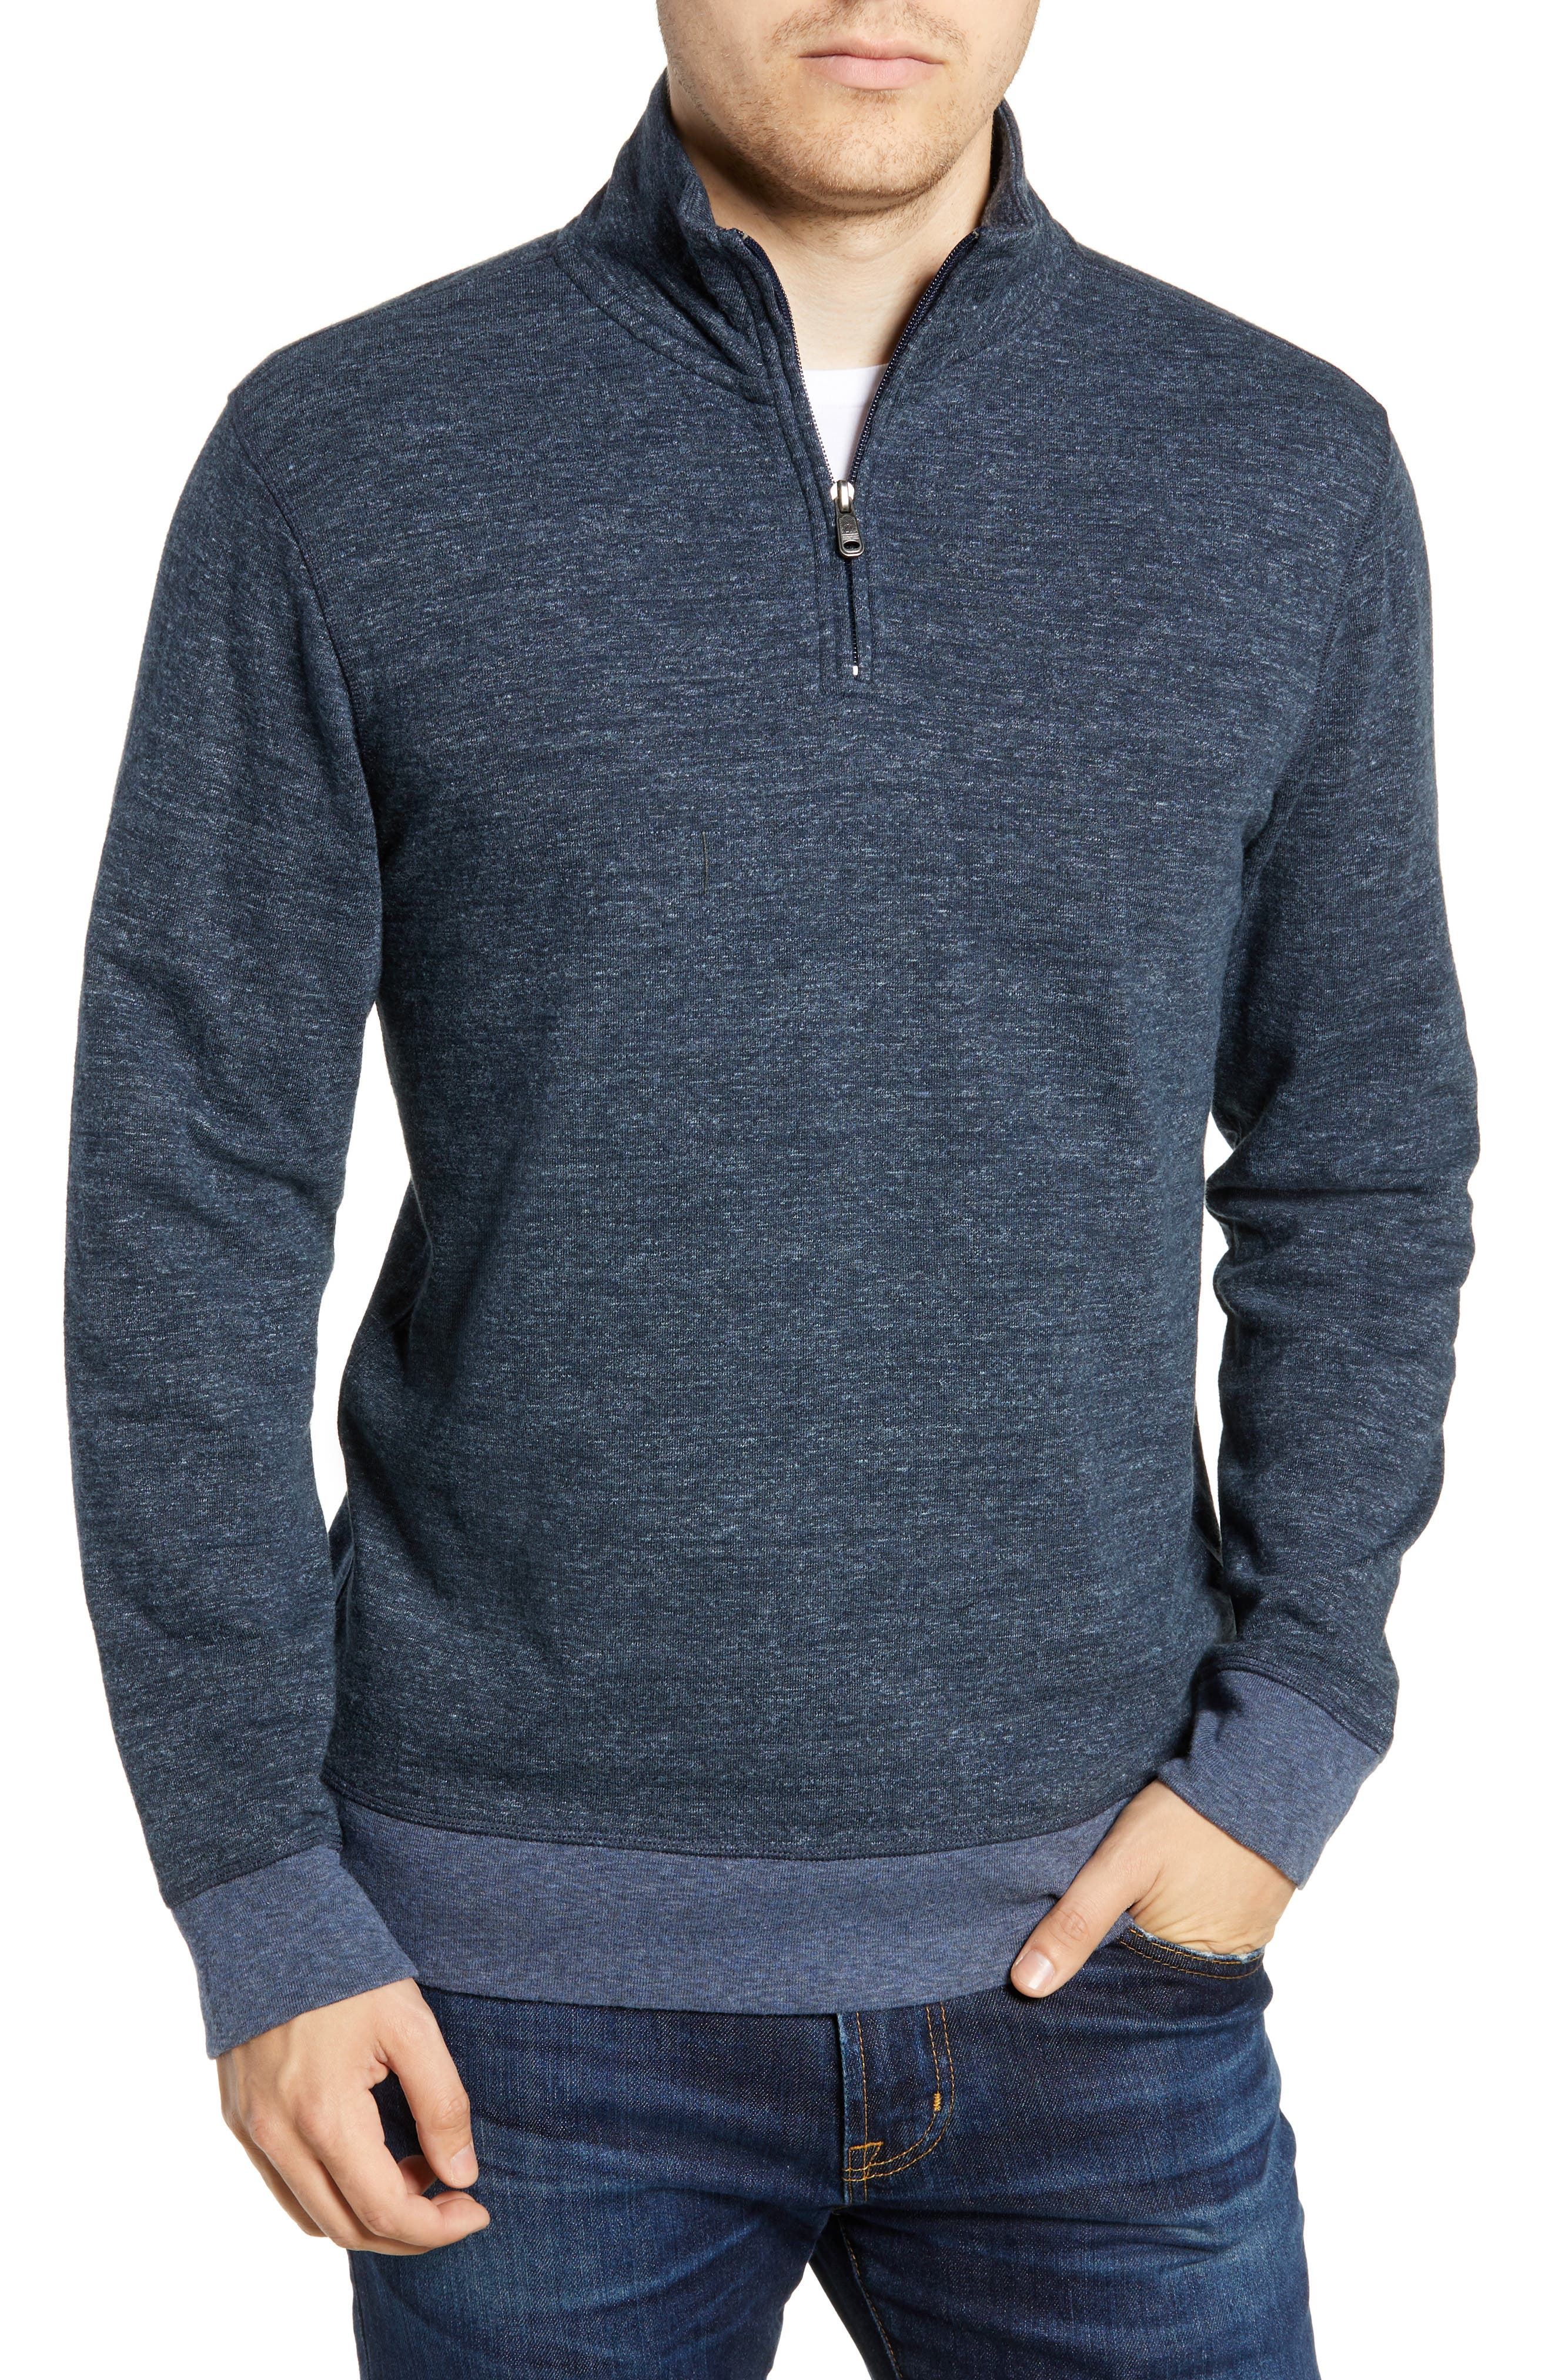 FAHERTY Brand Dual Knit Regular Fit Quarter Zip Pullover, Main, color, NAVY